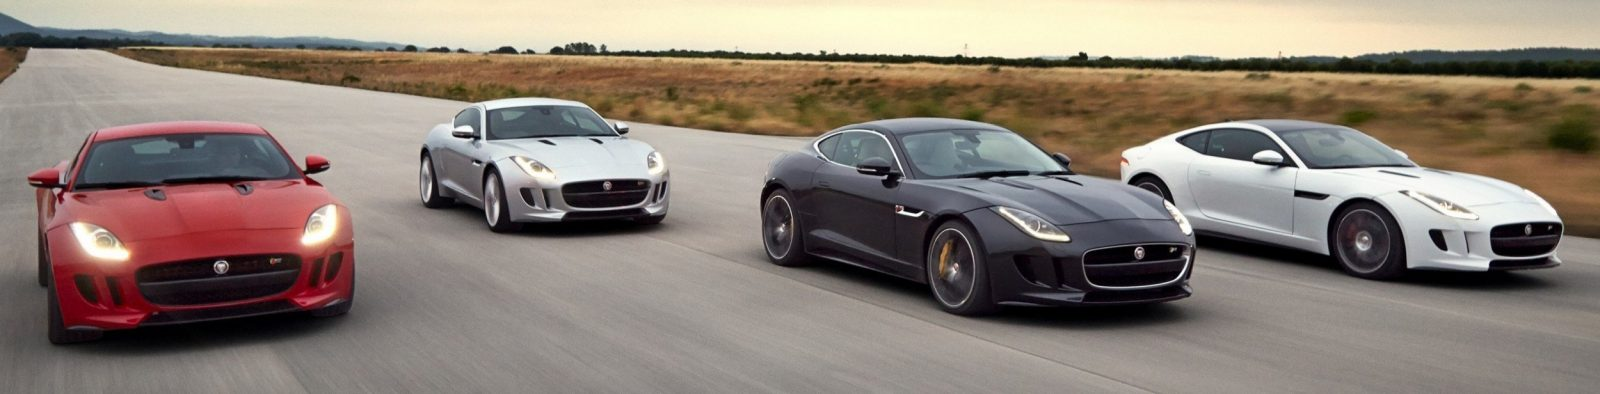 Jaguar Makes a WINNER!  2015 F-type Coupe Debuts Three Gorgeous Flavors, Pricing, Up to 550 HP!10